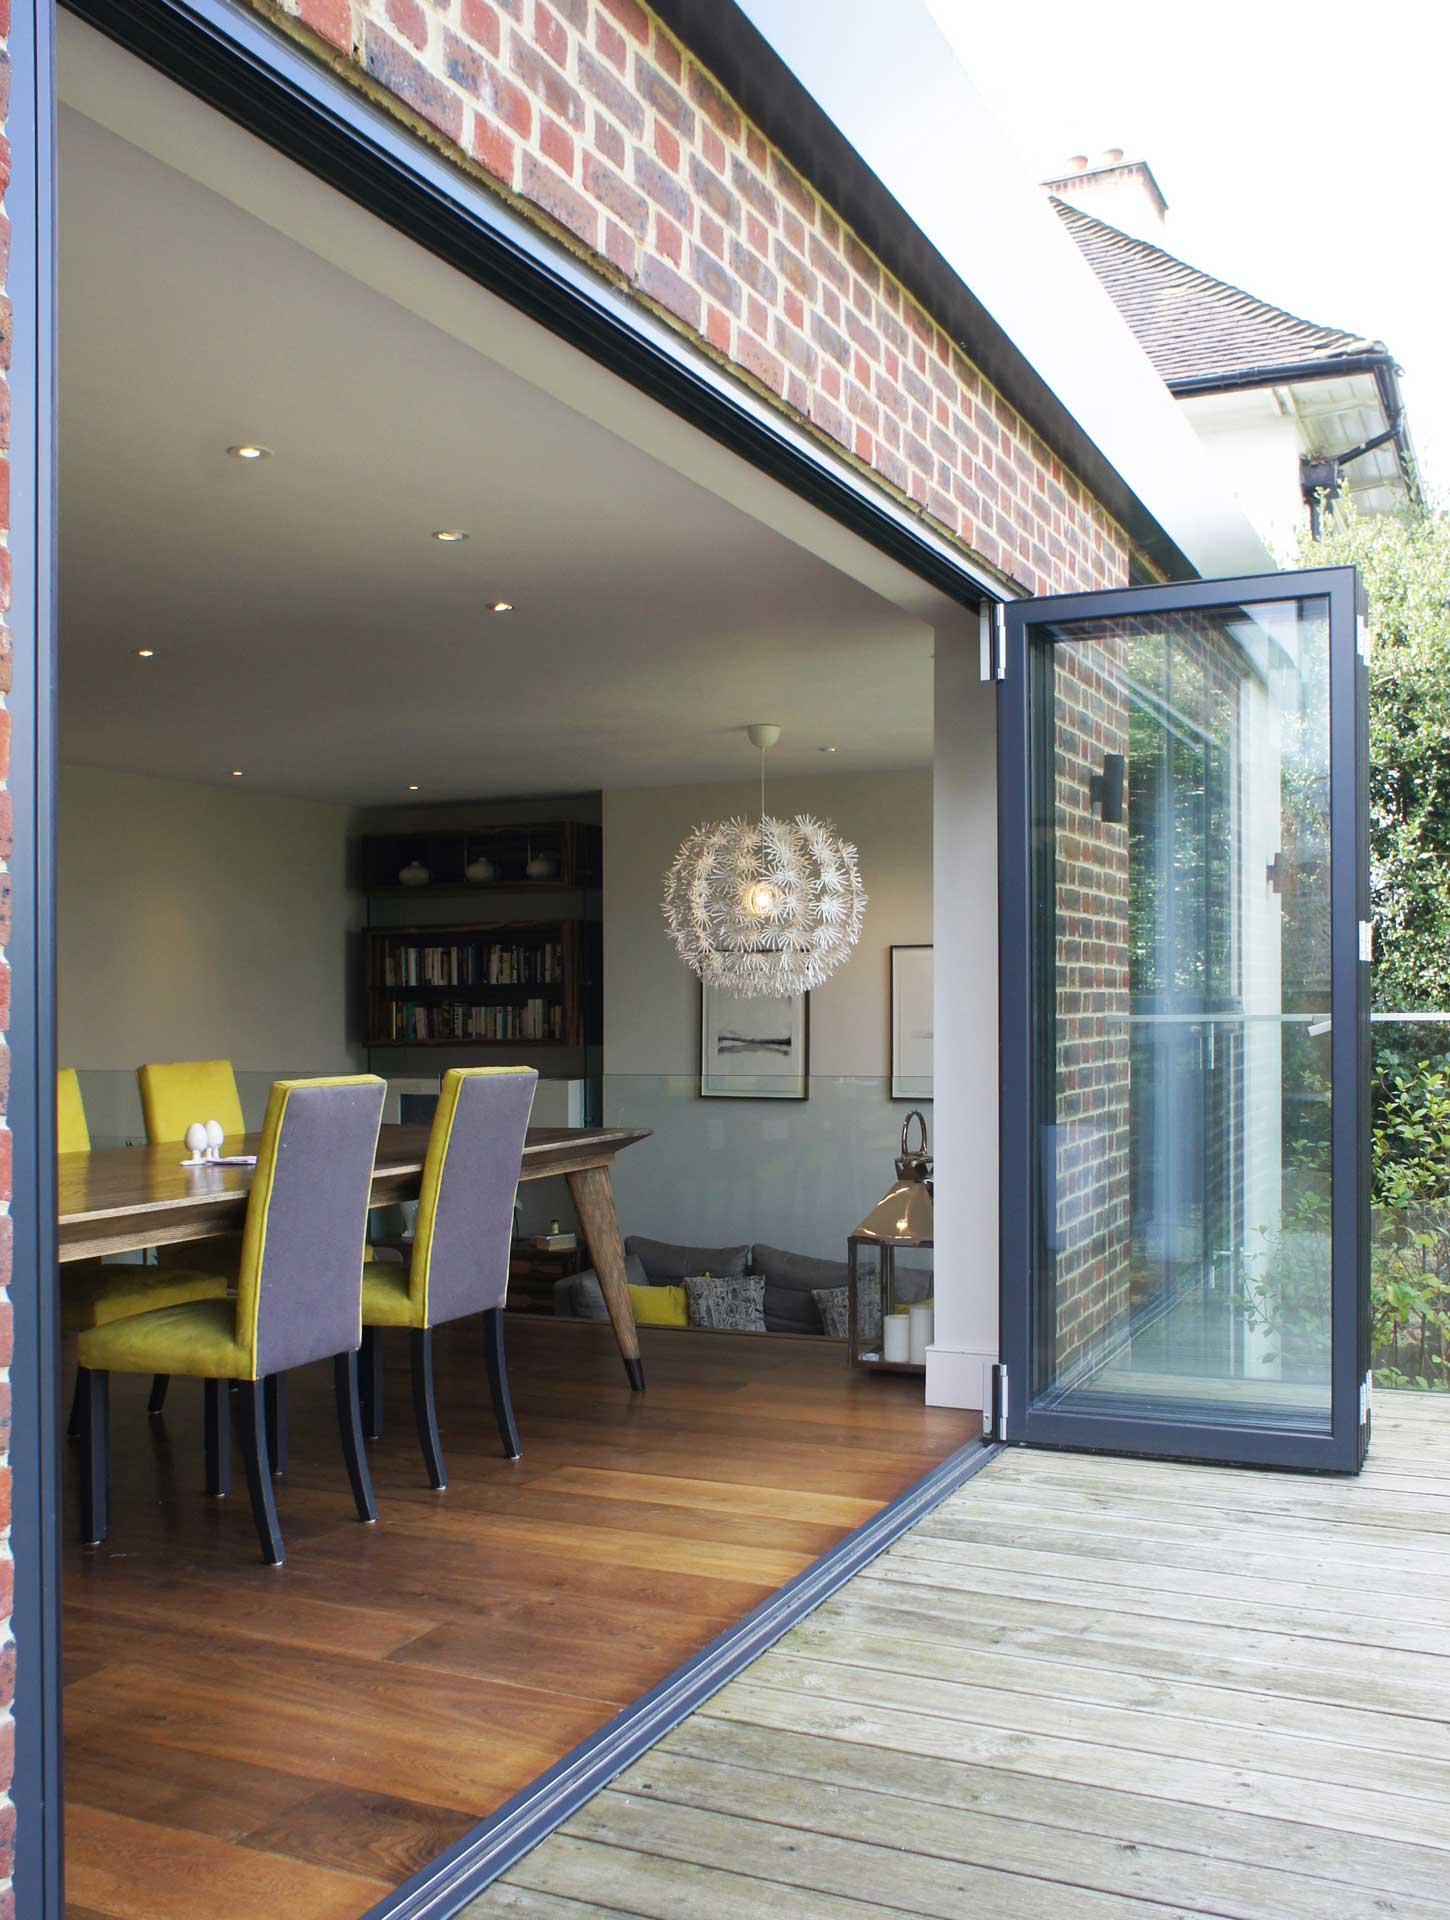 Ernle Road Wimbledon Remodelling, Refurbishing and Extending Of A Detached House 12